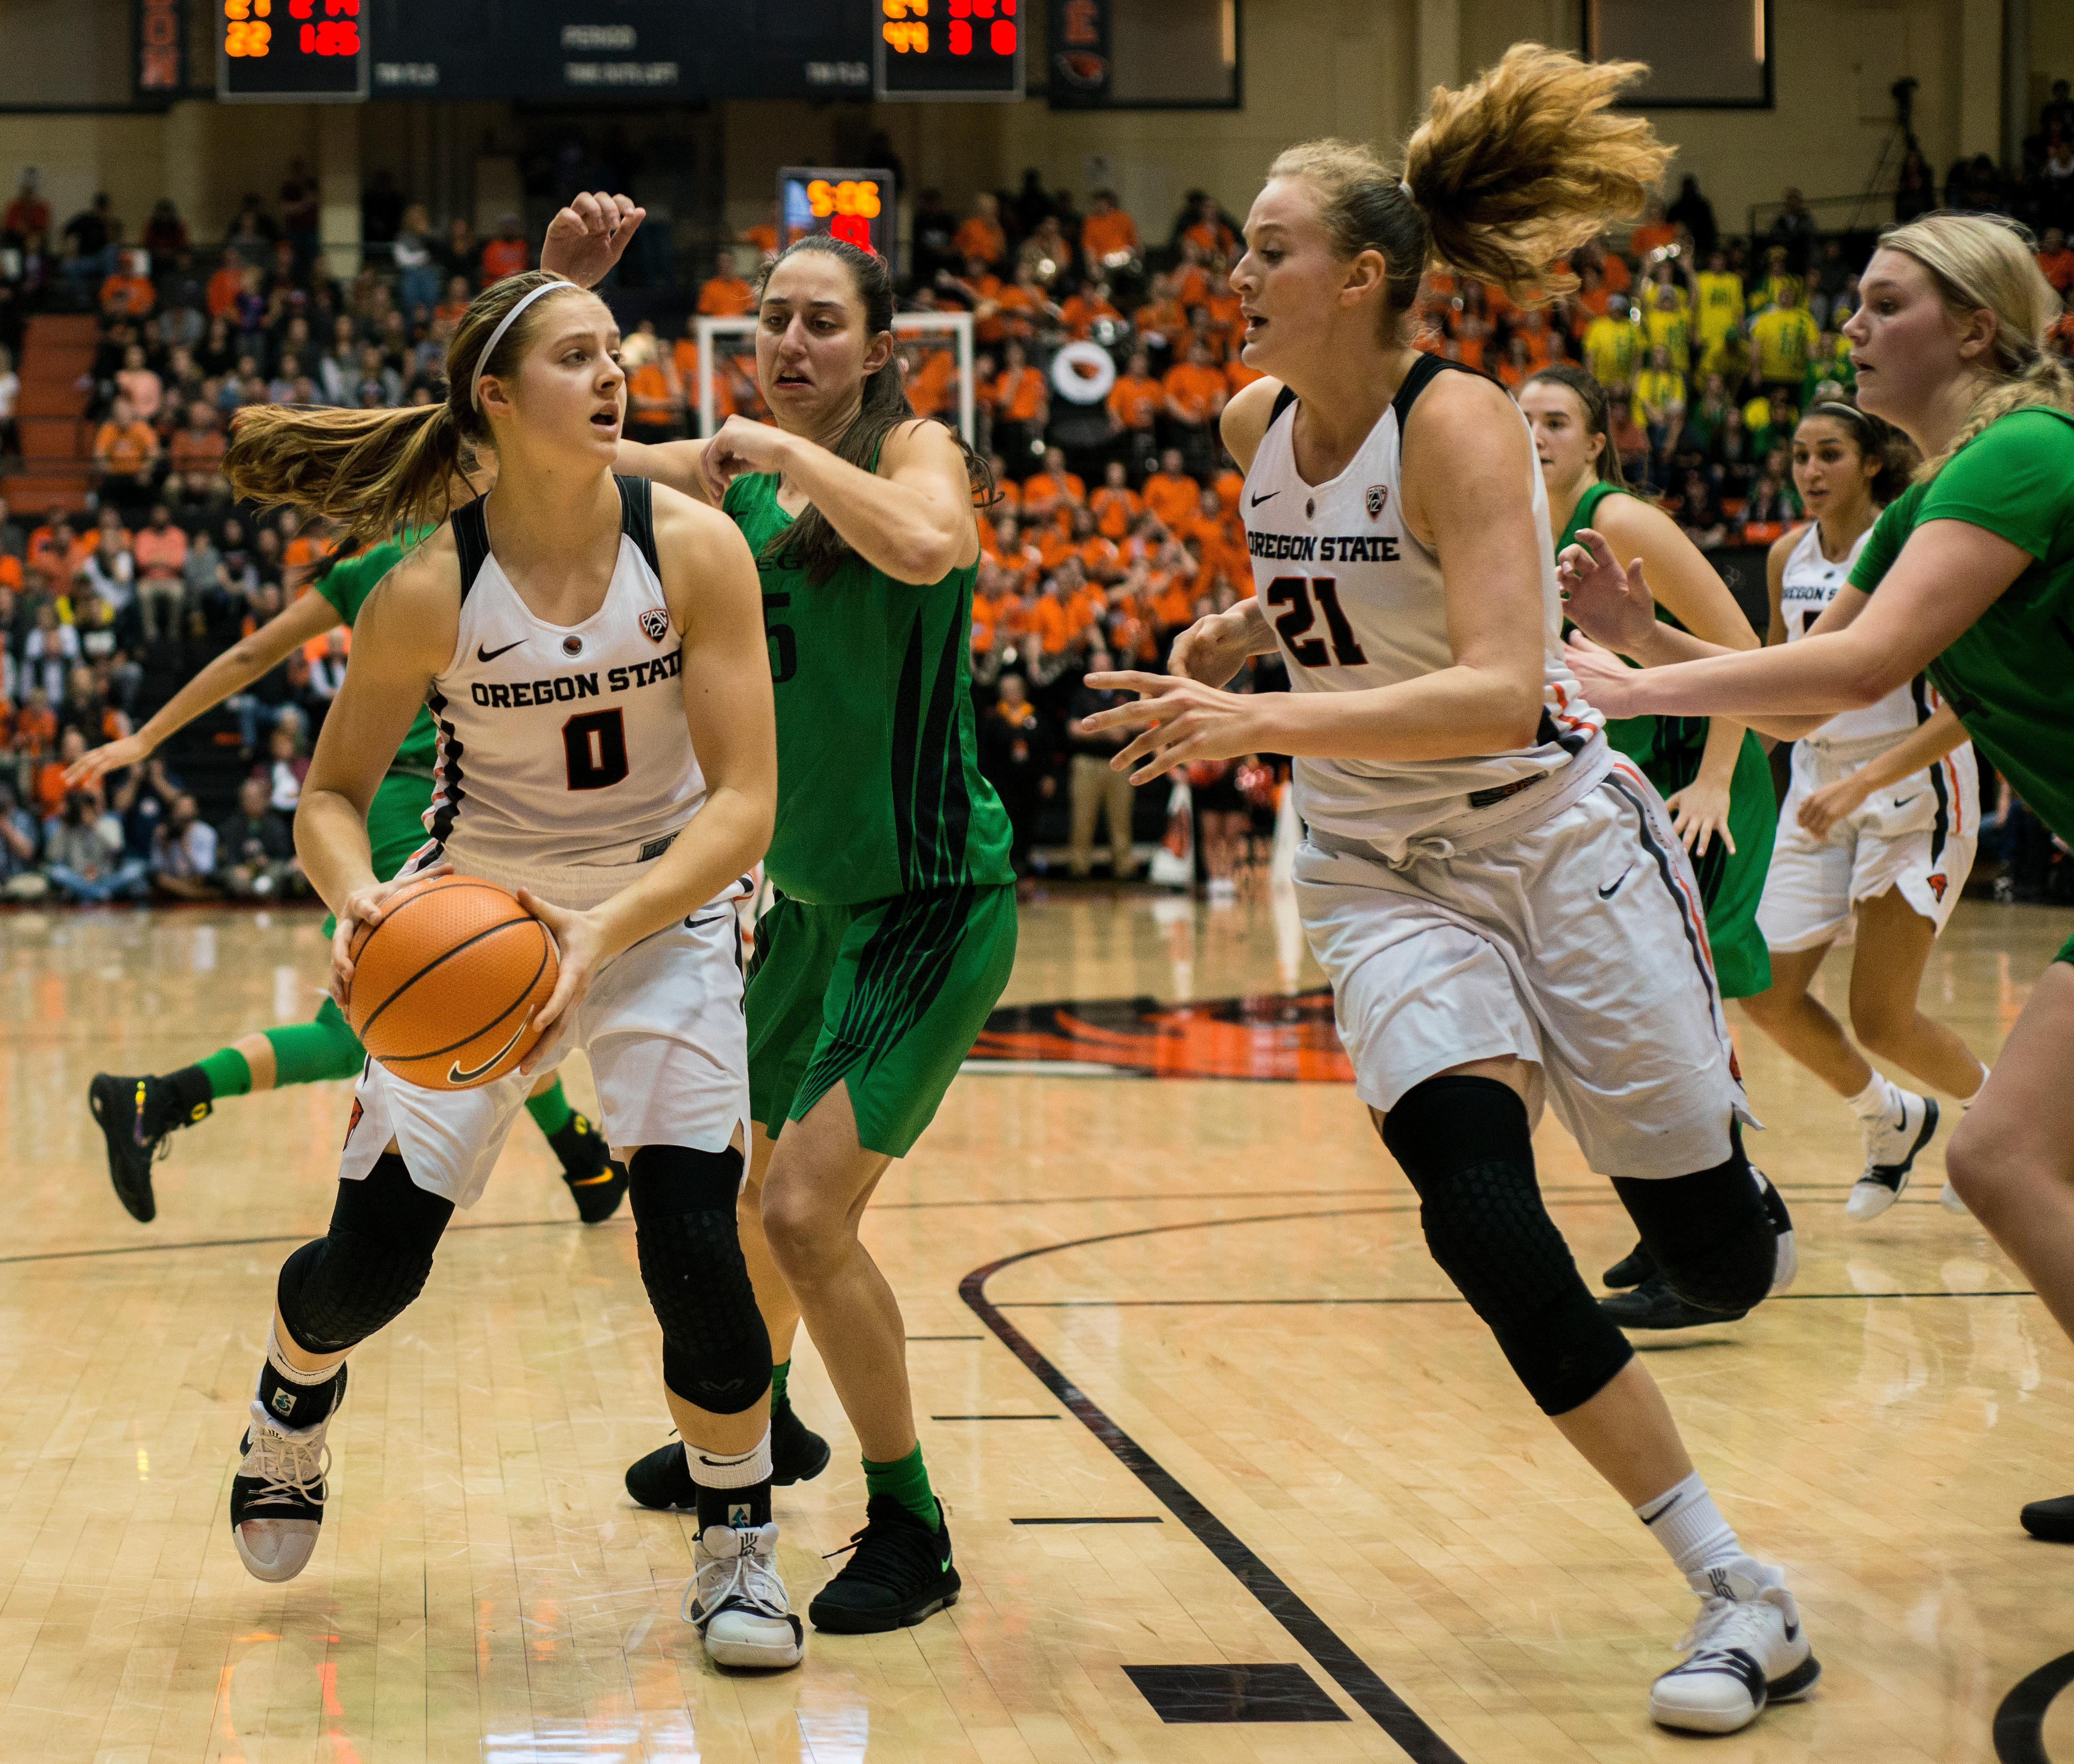 Oregon State Beavers guard Mikayla Pivec (#0) pushes past Oregon Ducks defense as Beavers forward Marie Gülich (#21) swoops in to take the pass.The Oregon Ducks were defeated by the Oregon State Beavers 85-79 on Friday night in Corvallis. Sabrina Ionescu scored 35 points and Ruthy Hebard added 24. The Ducks will face the Beavers this Sunday at 5 p.m. at Matthew Knight Arena. Photo by Abigail Winn, Oregon News Lab